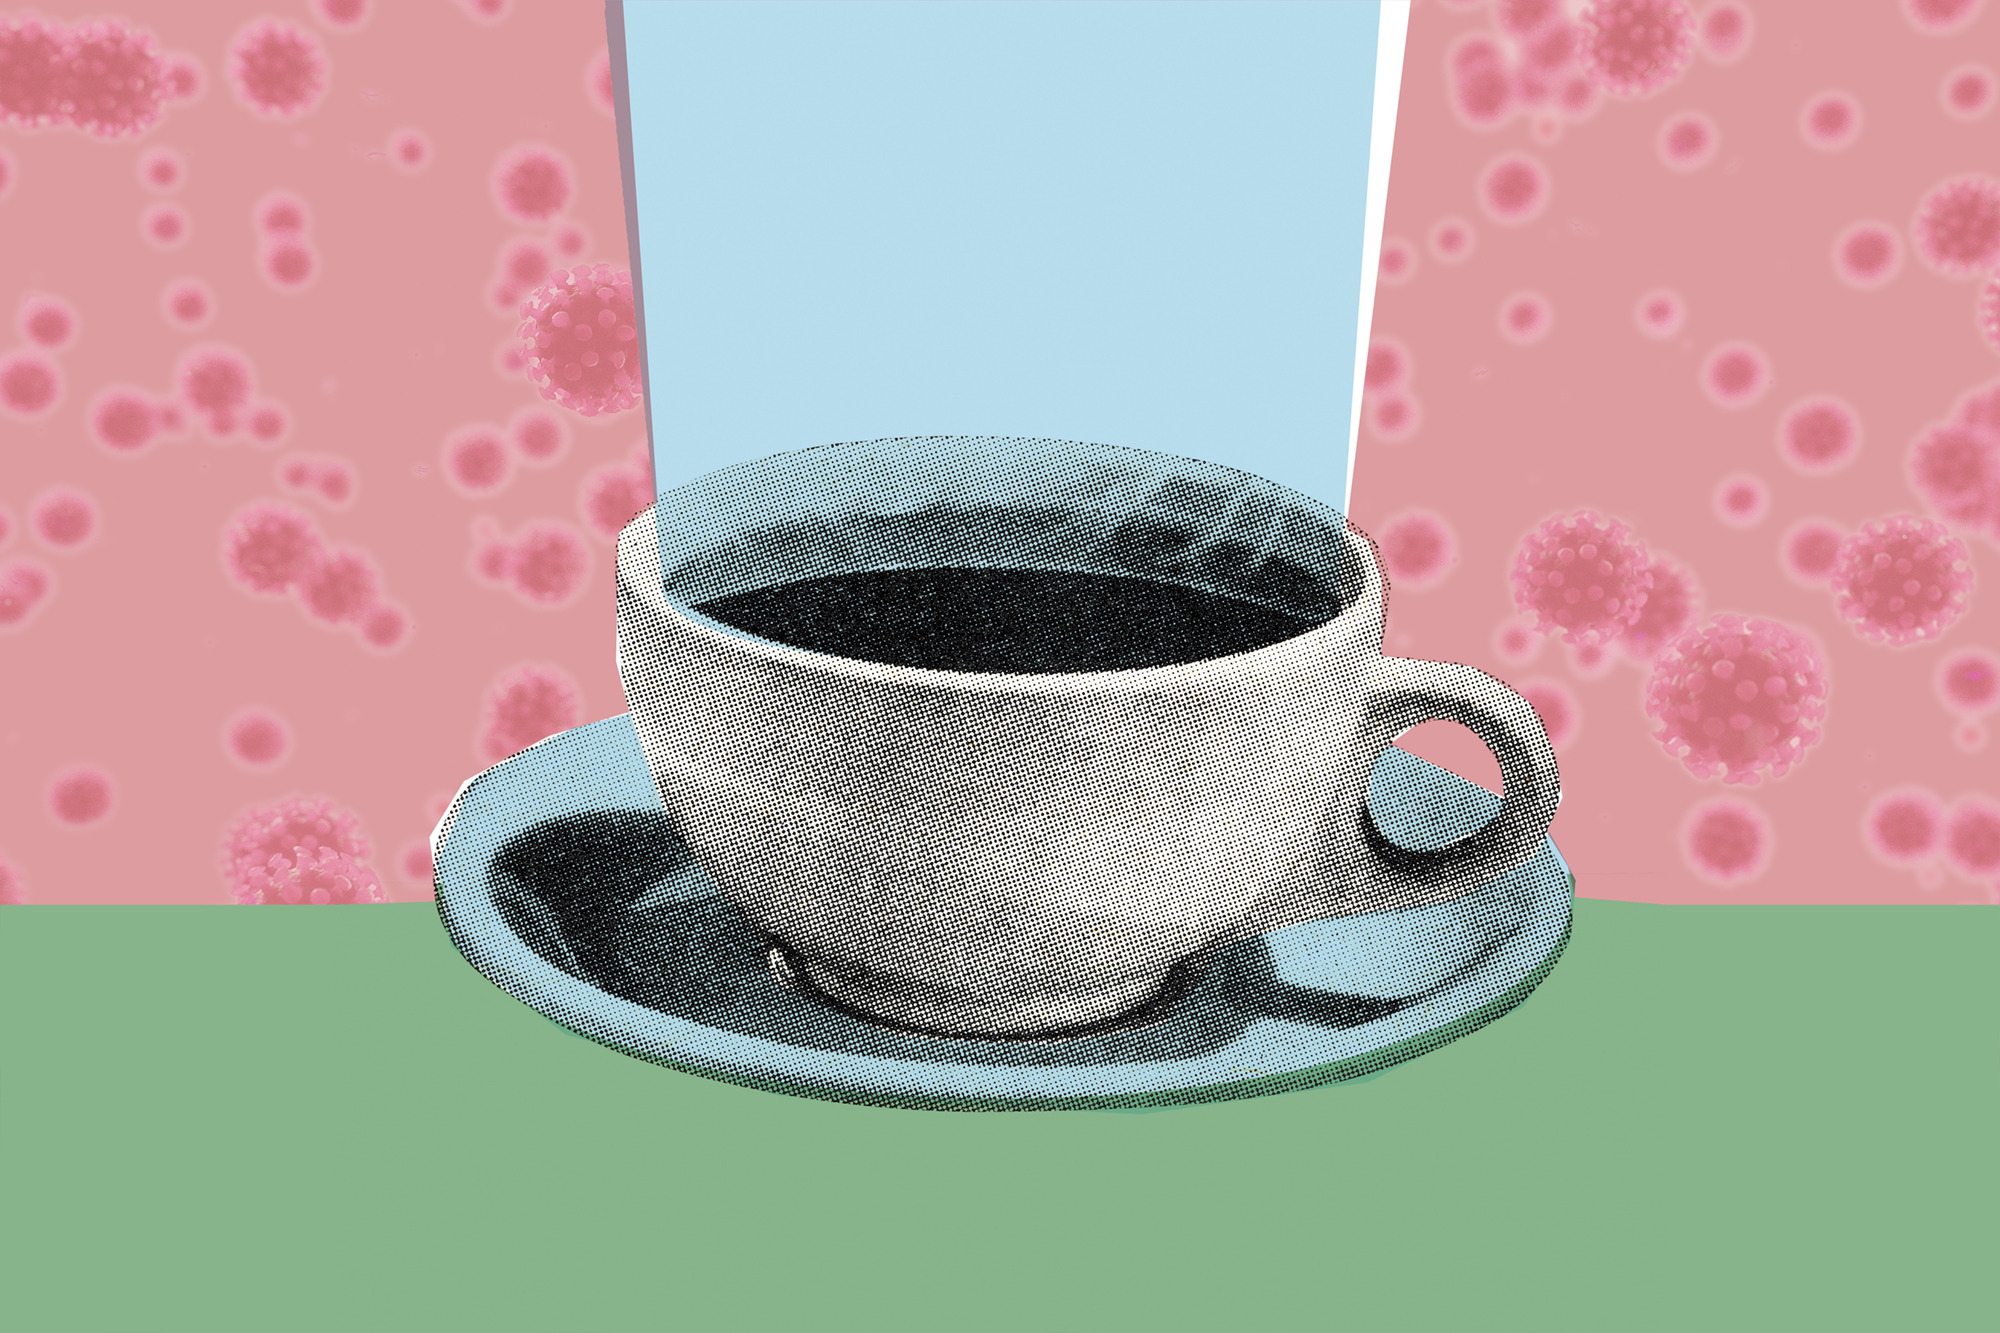 Is Coffee Consumption Linked To A Lower Risk Of COVID-19?